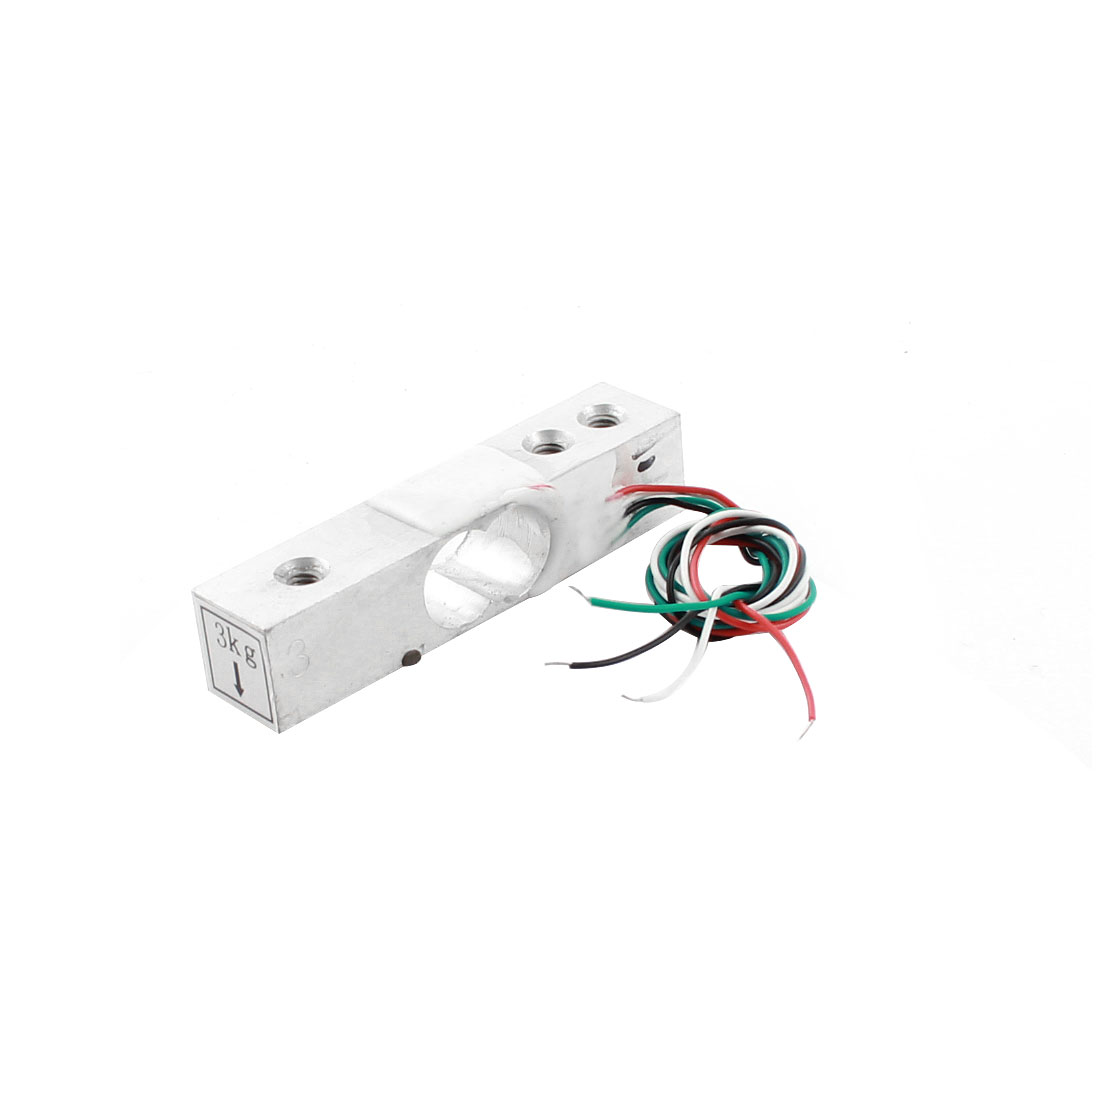 3Kg 6.6lb 3mm 3-Hole 4-Wired Aluminium Alloy Rectangle Mini Load Cell Weighting Pressure Sensor